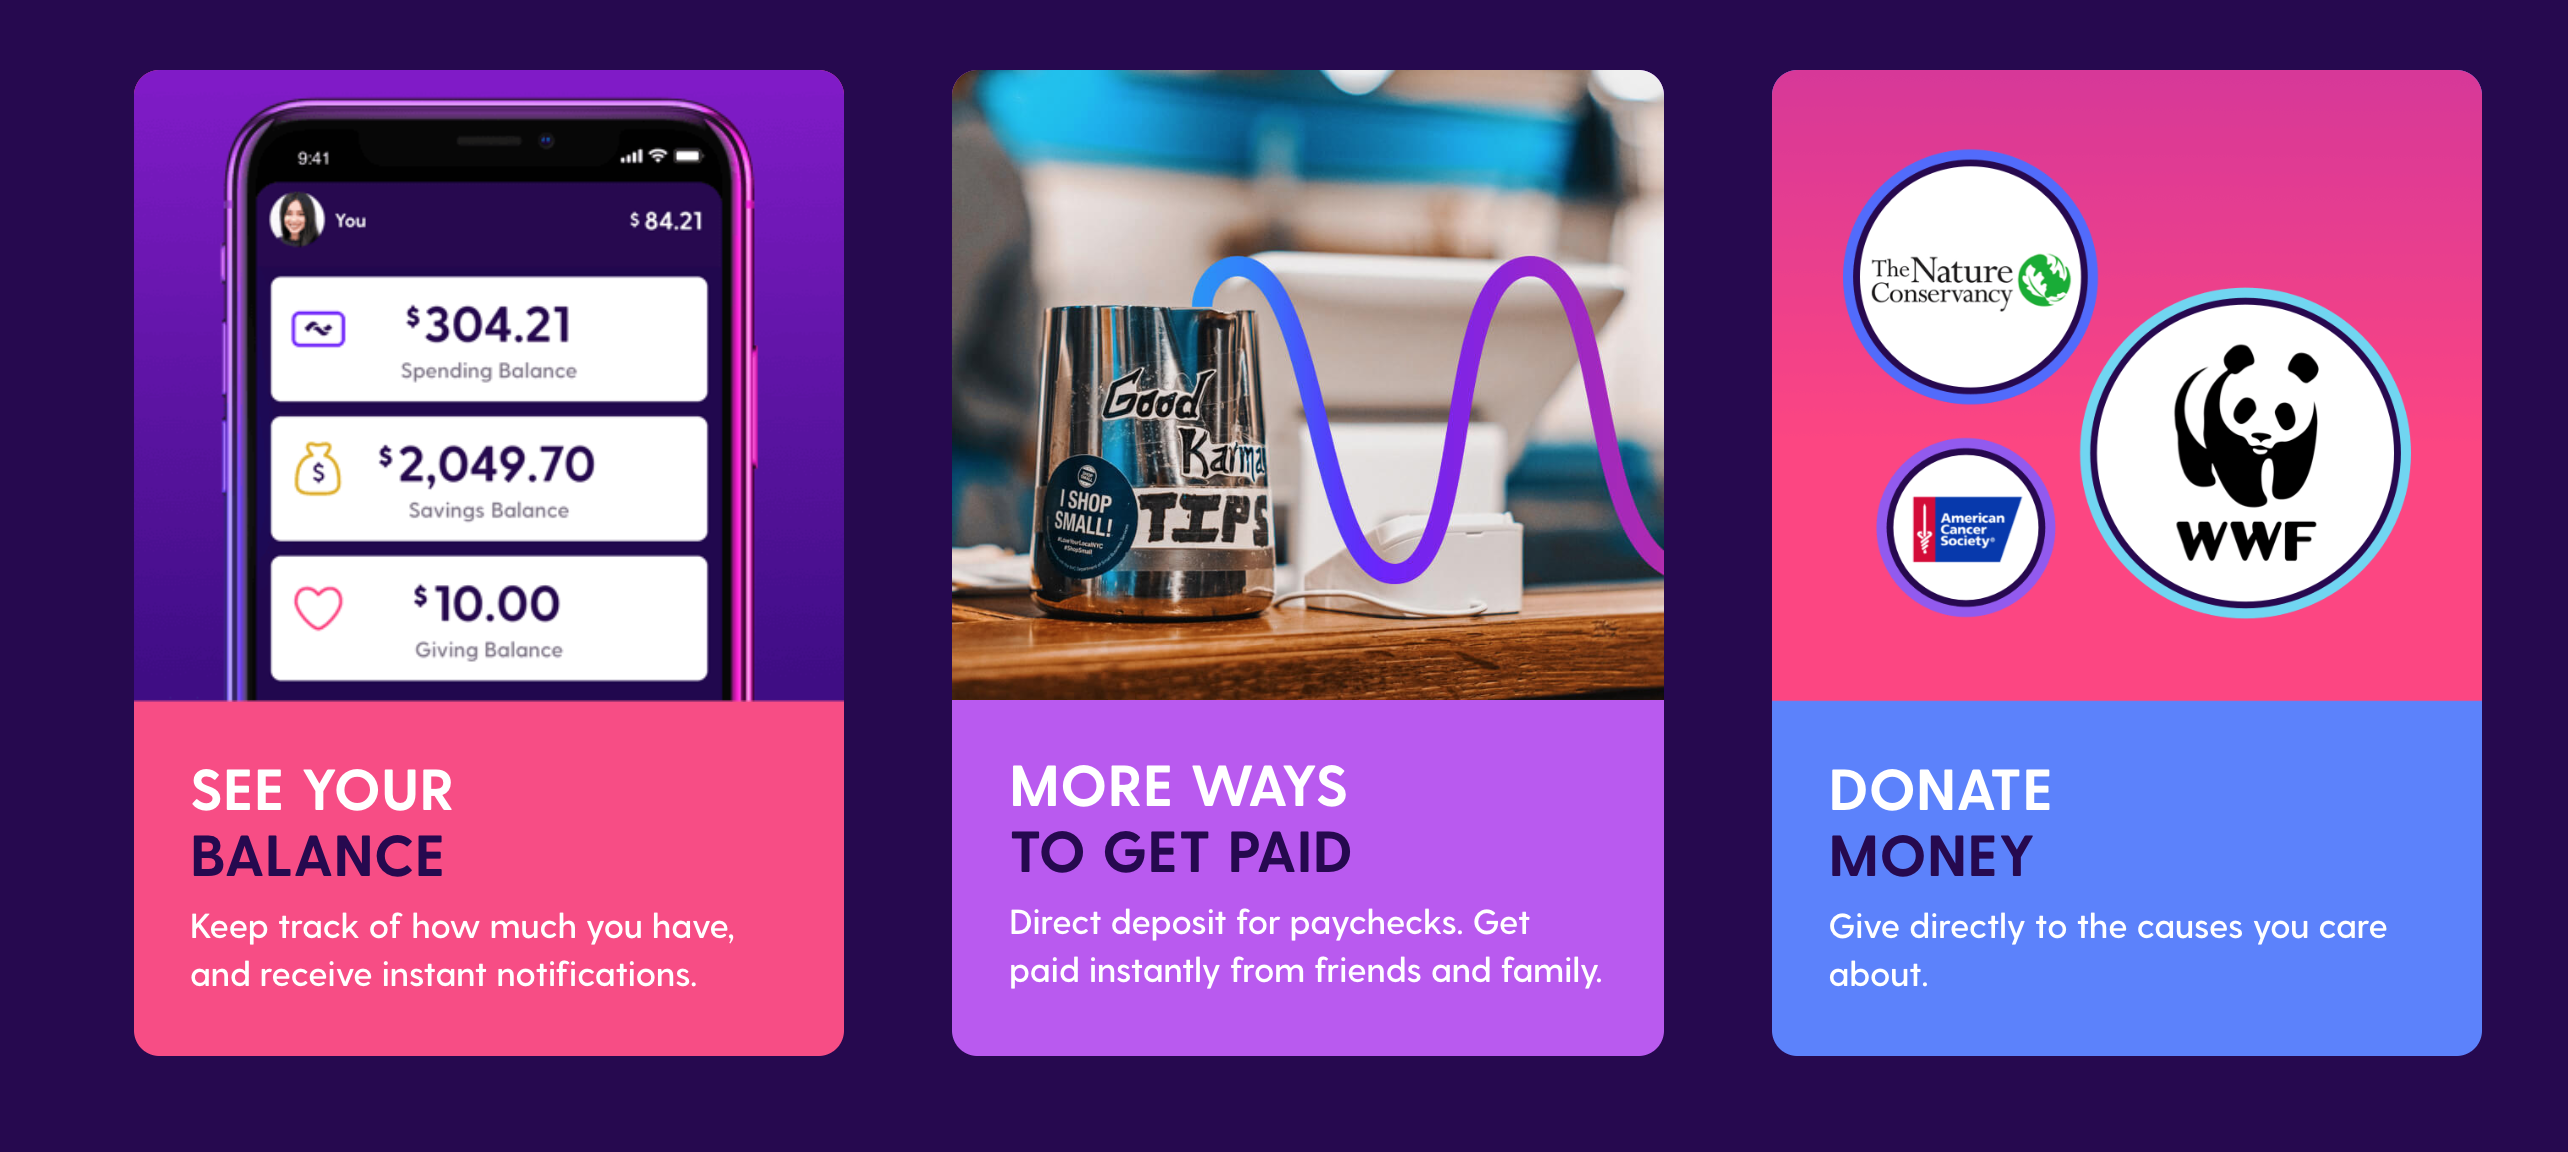 Credit Card banking app, the Current.